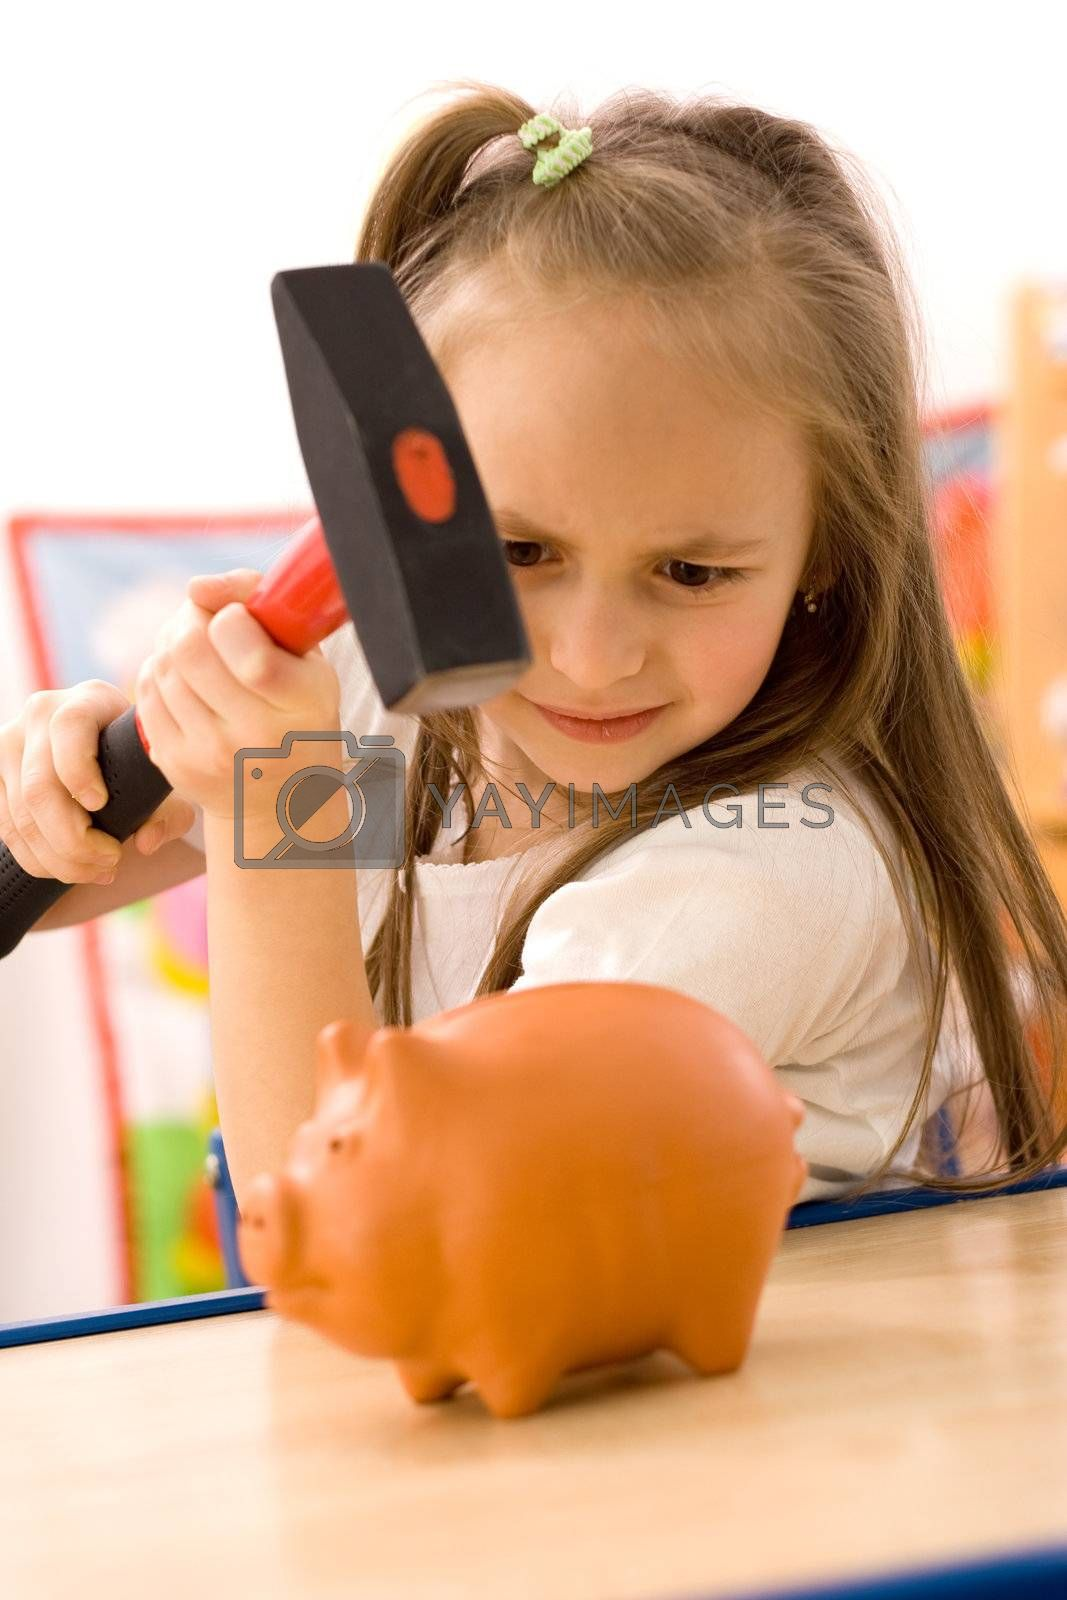 Girl breaking the piggy bank with hammer